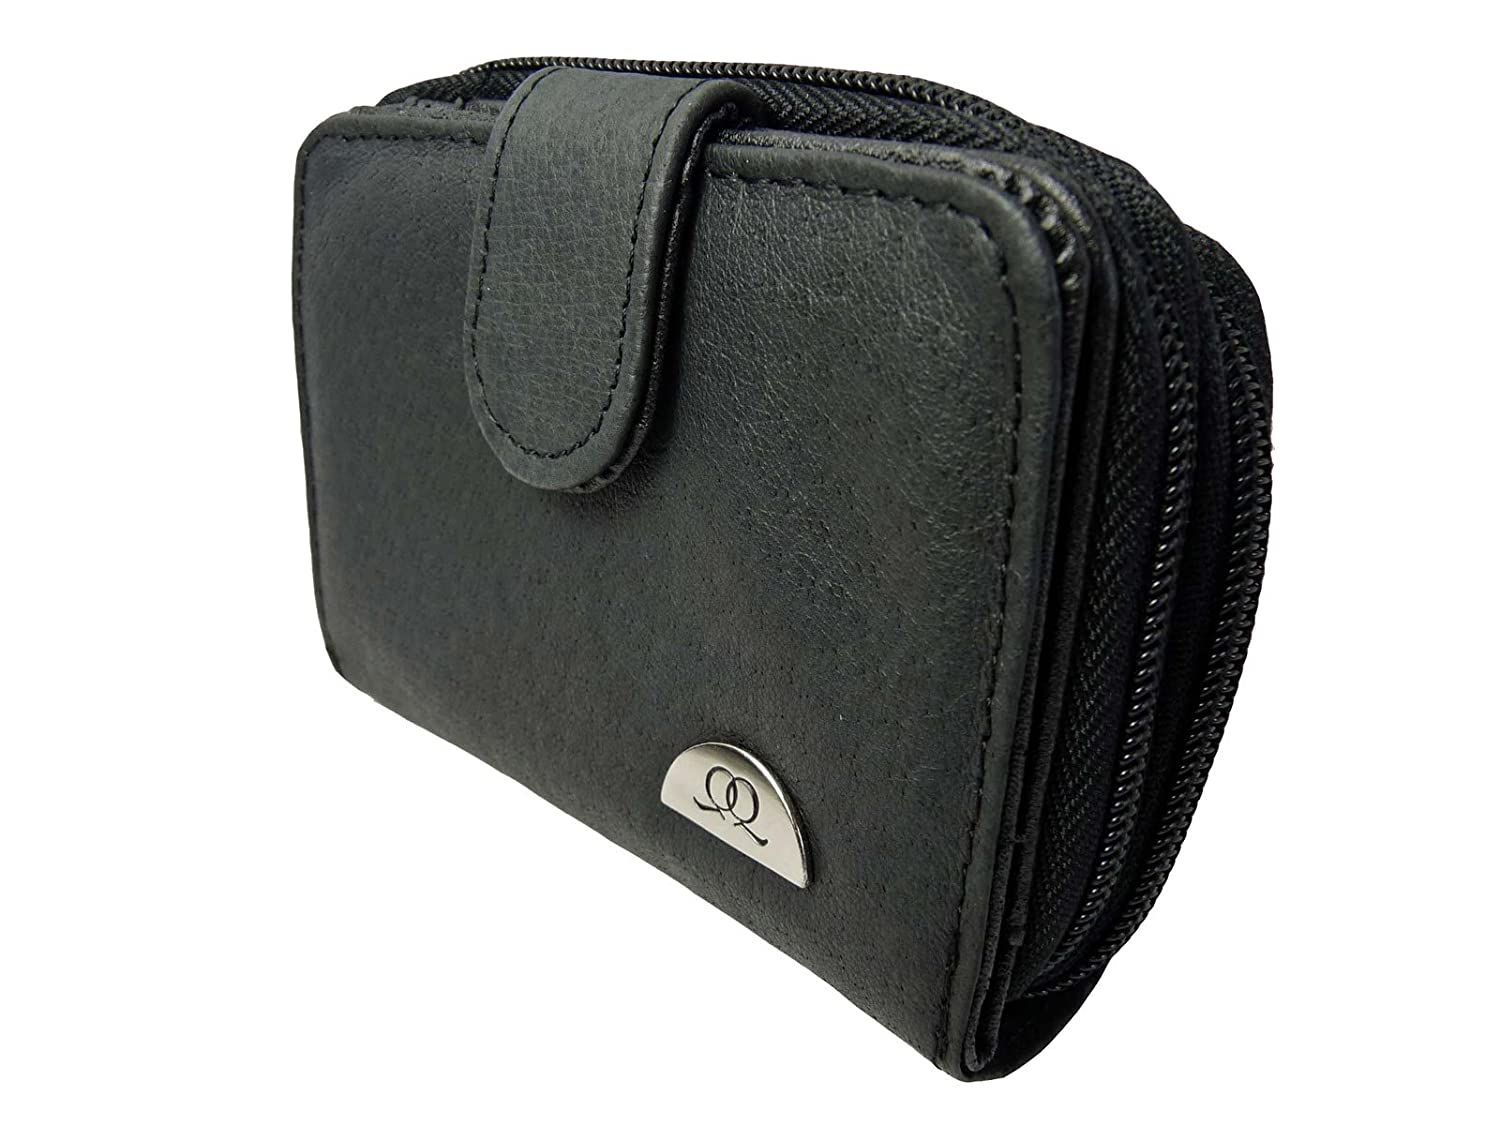 Ladies Leather Purse RFID BLOCKING - IN PRESENT BOX - 6 Credit Card Spaces Zip Closure - CONTACTLESS THEFT PROTECTION - Zipped Up Coin Section Photo Page - Quenchy London QL330KX (Black Gift Boxed) QL330X